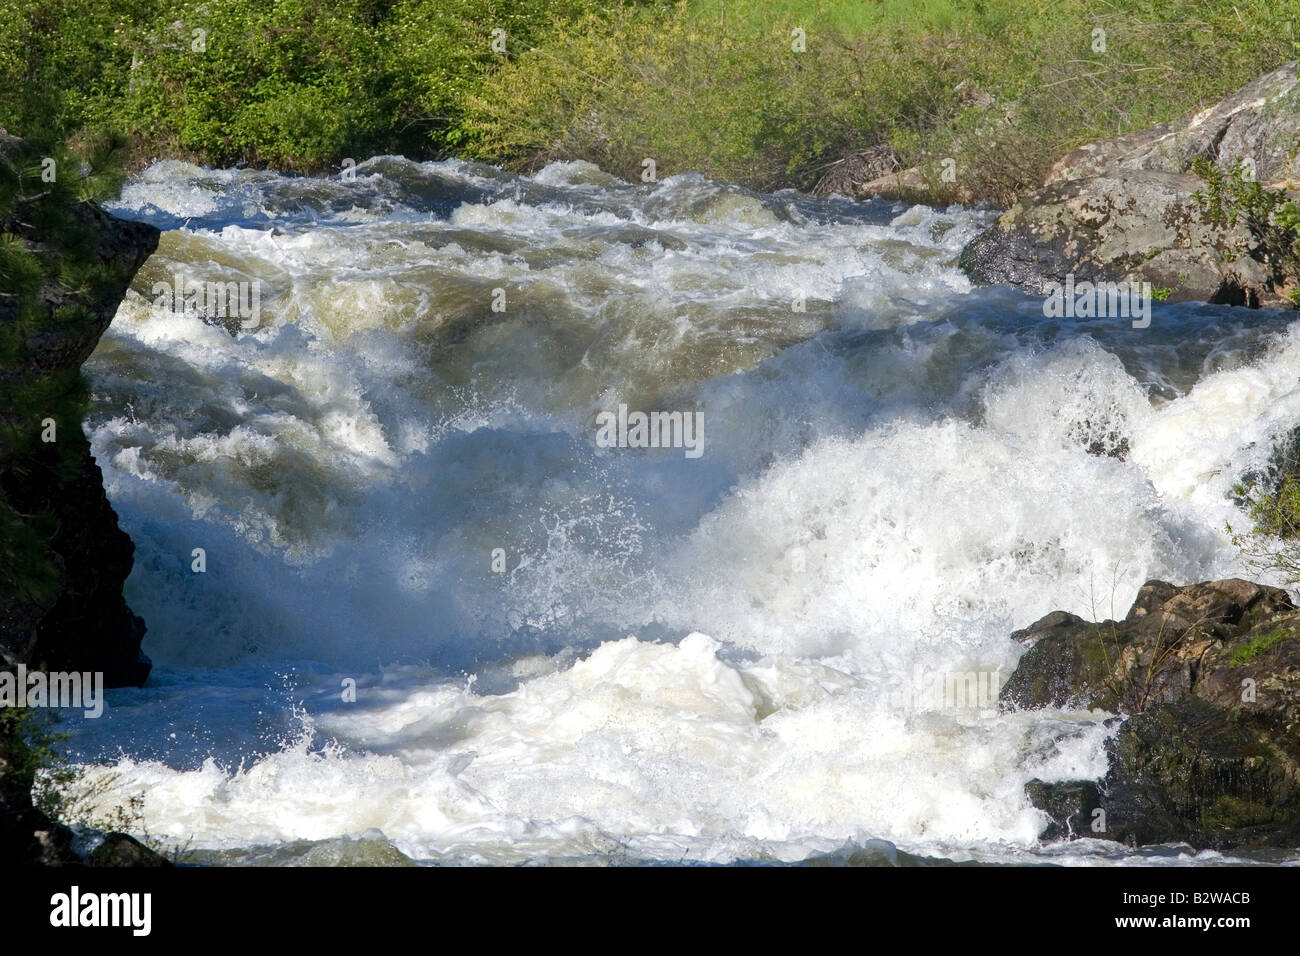 The Little Salmon River in Adams County Idaho - Stock Image